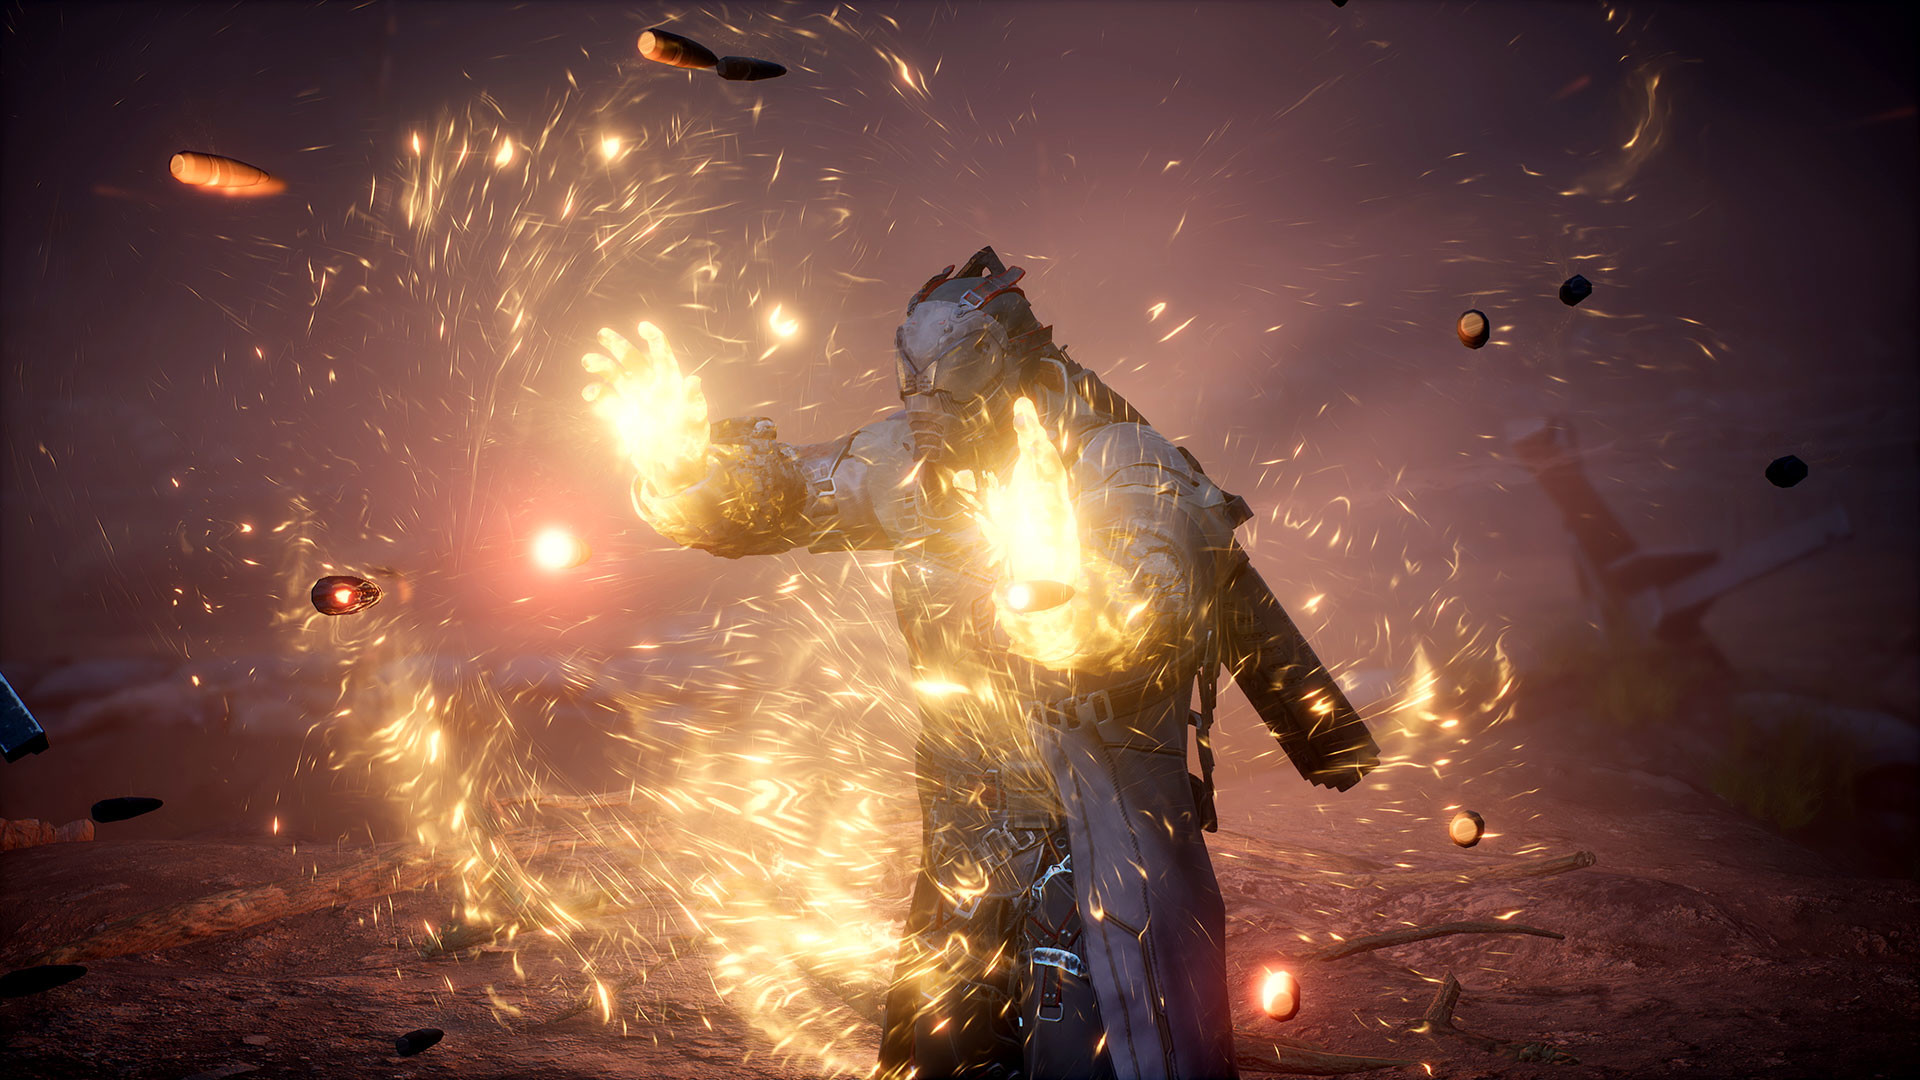 Official Outriders system requirements demand an RTX 3080 for ultra